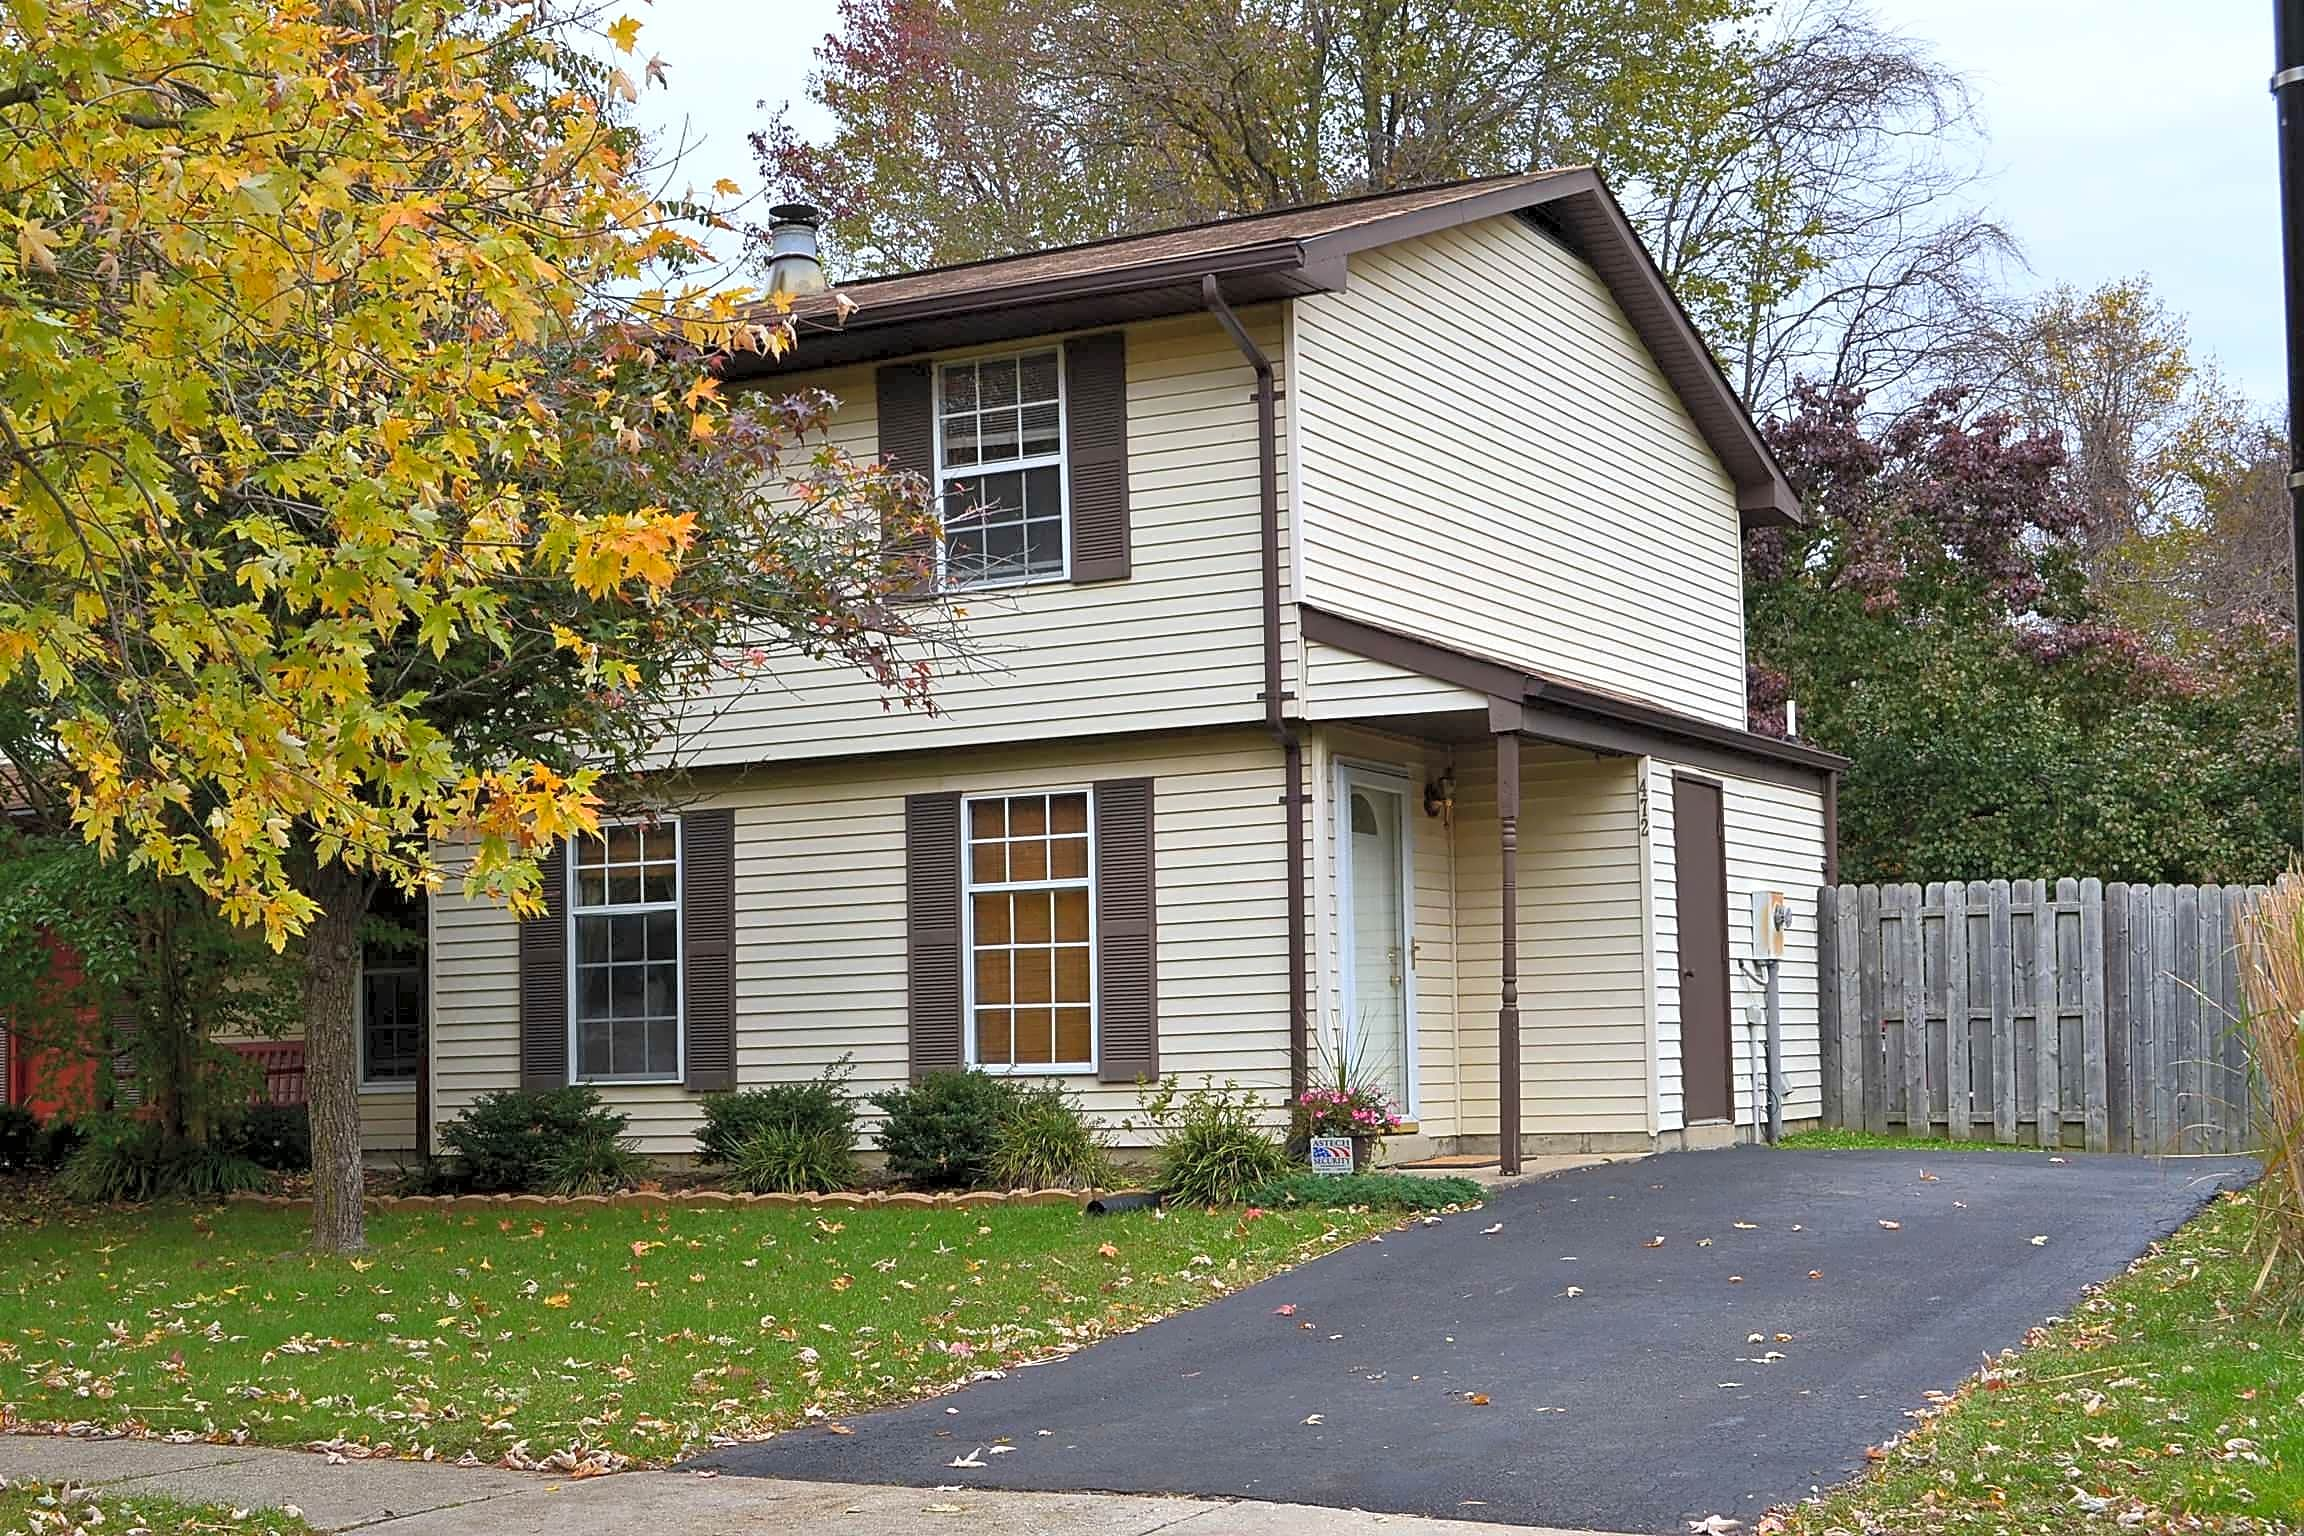 Duplex for Rent in Arnold